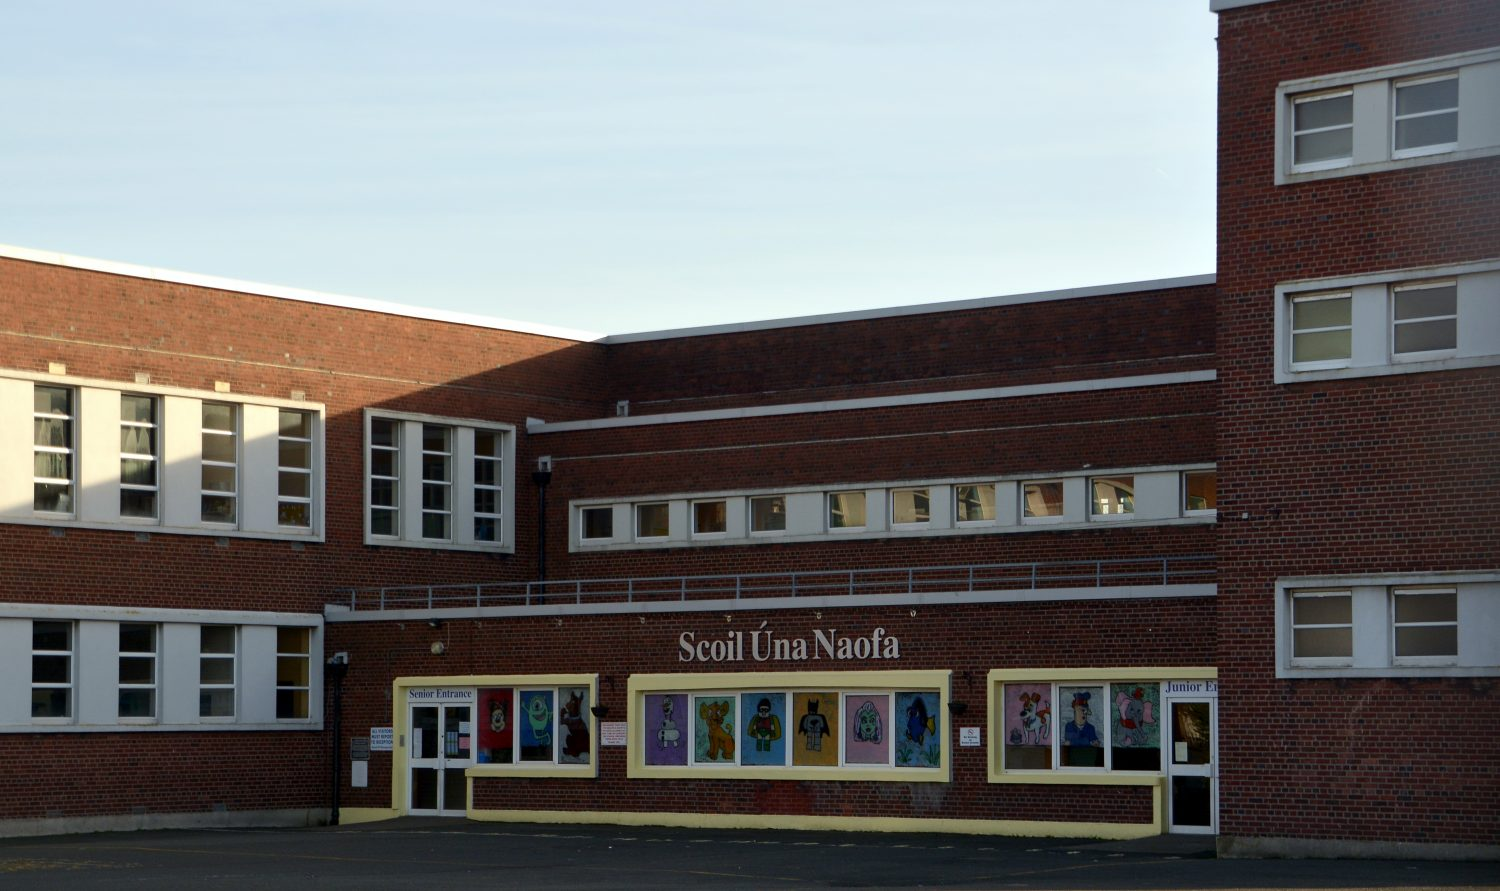 Scoil Úna Naofa., Preschool and Primary School, Crumlin, Dublin, Ireland